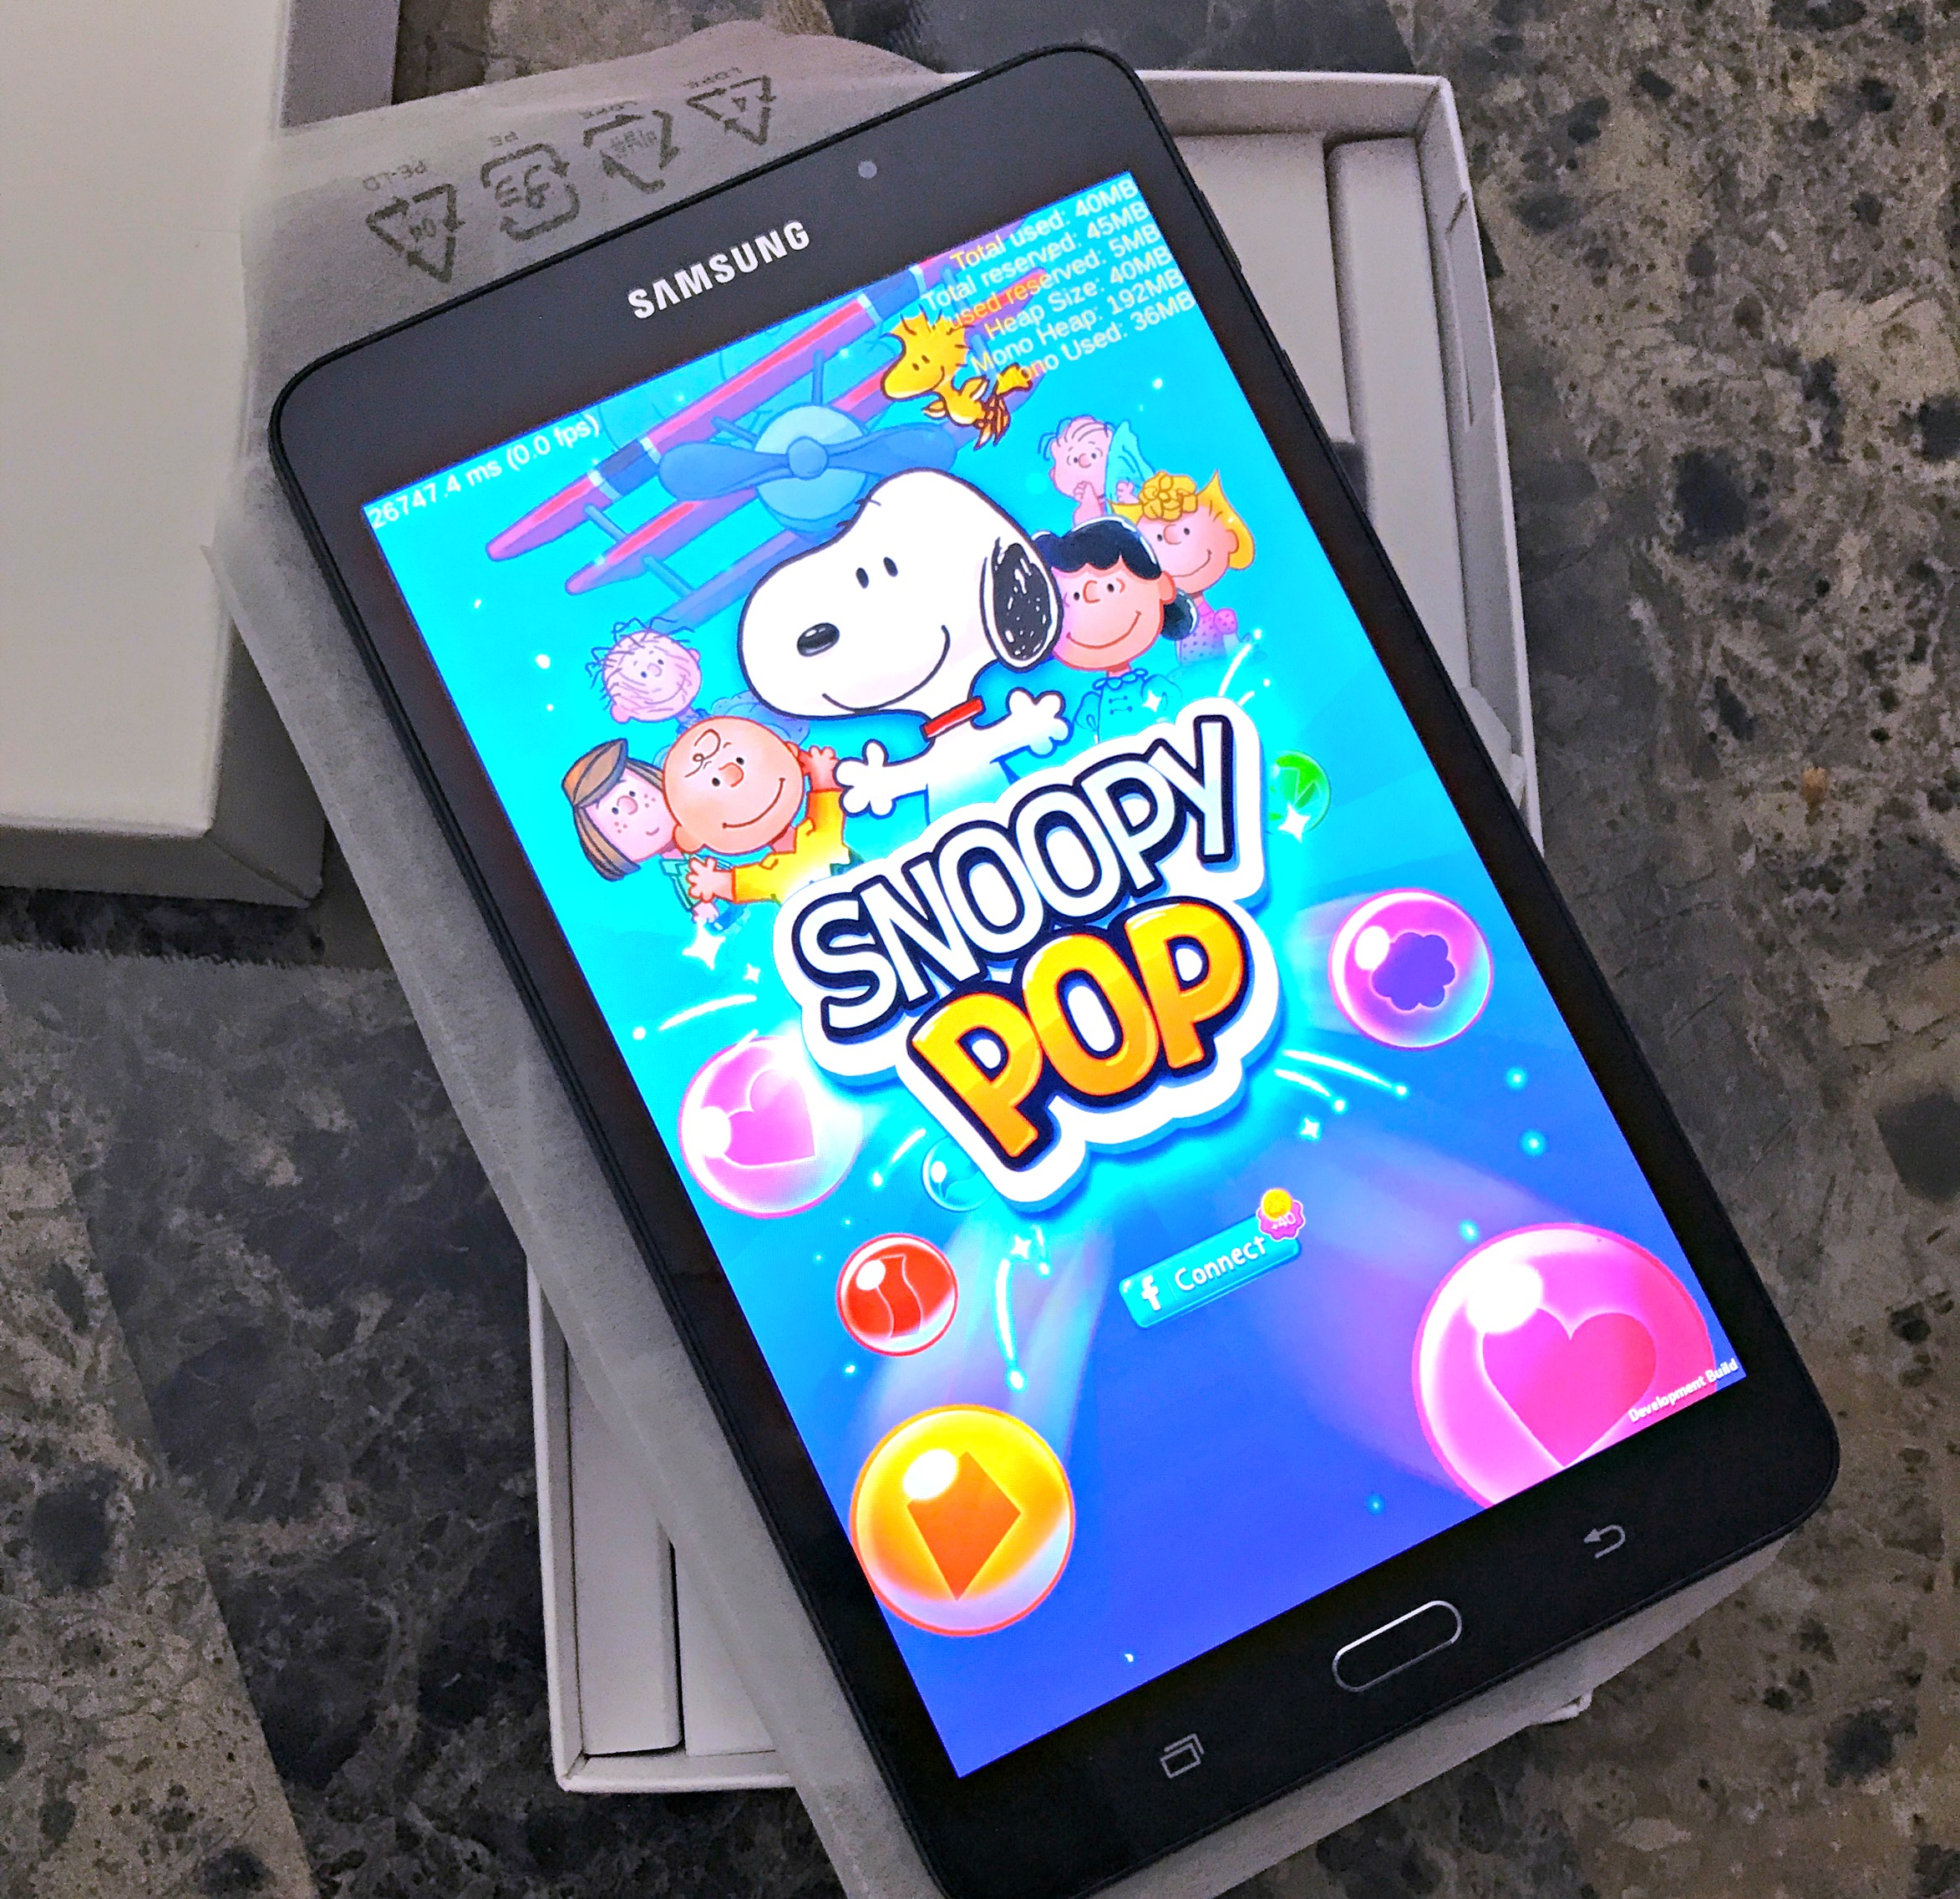 GIVEAWAY - Samsung Galaxy Tablet preloaded w/Snoopy Pop ends 7/19